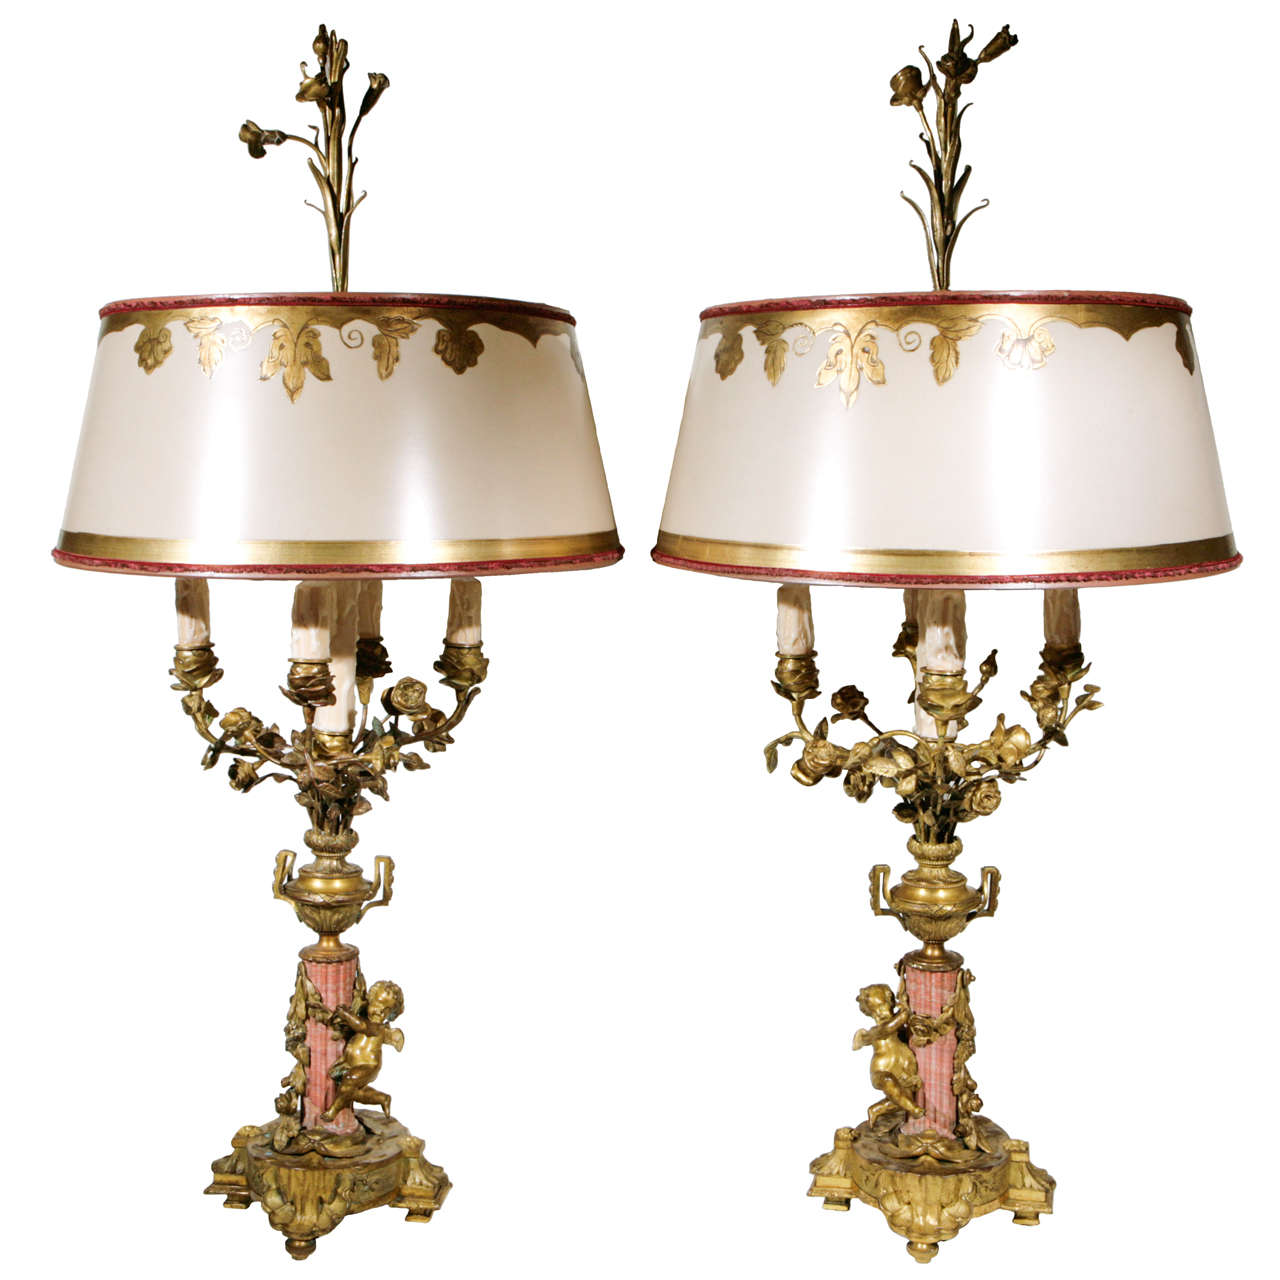 Pair of 19th Century French Bronze and Coral Marble Candelabra Lamps